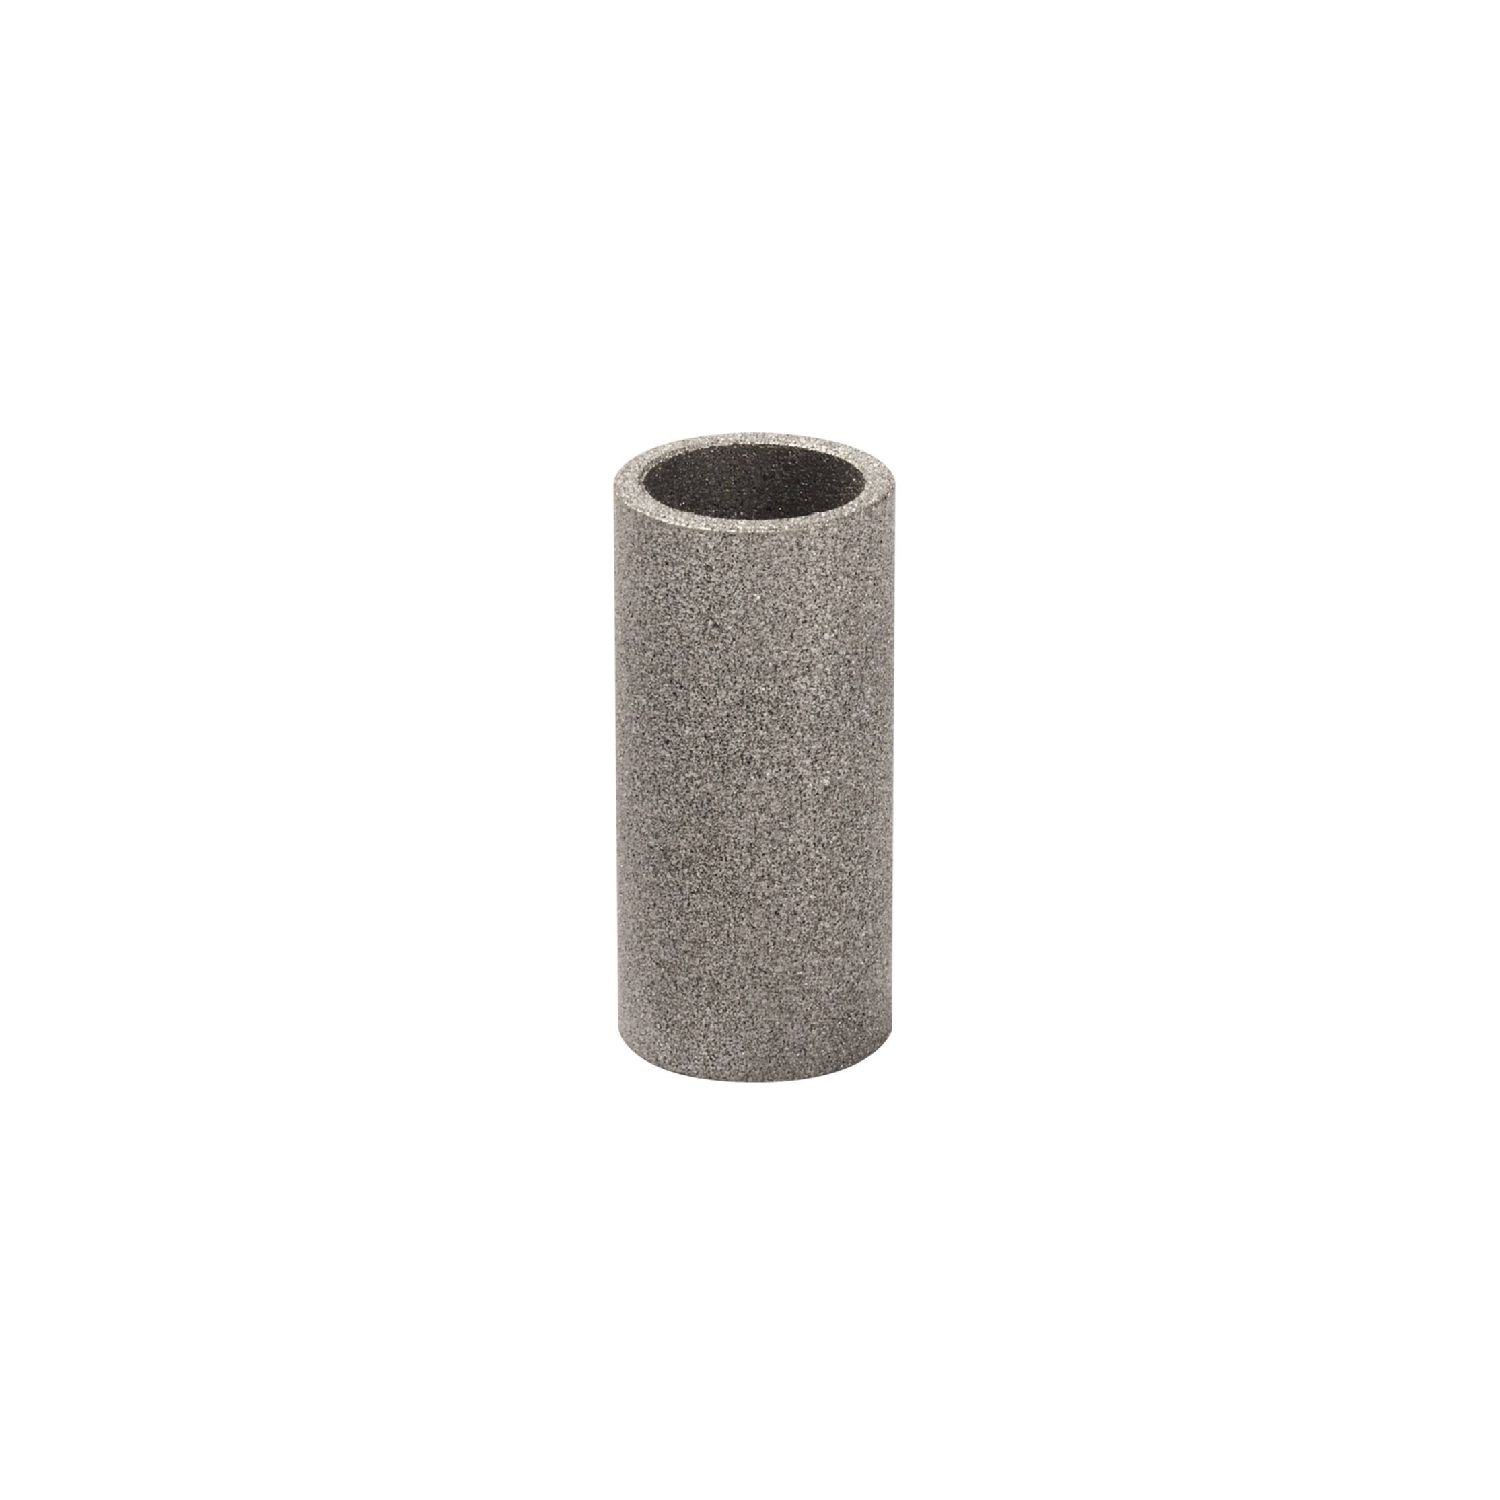 Spare sintered filter